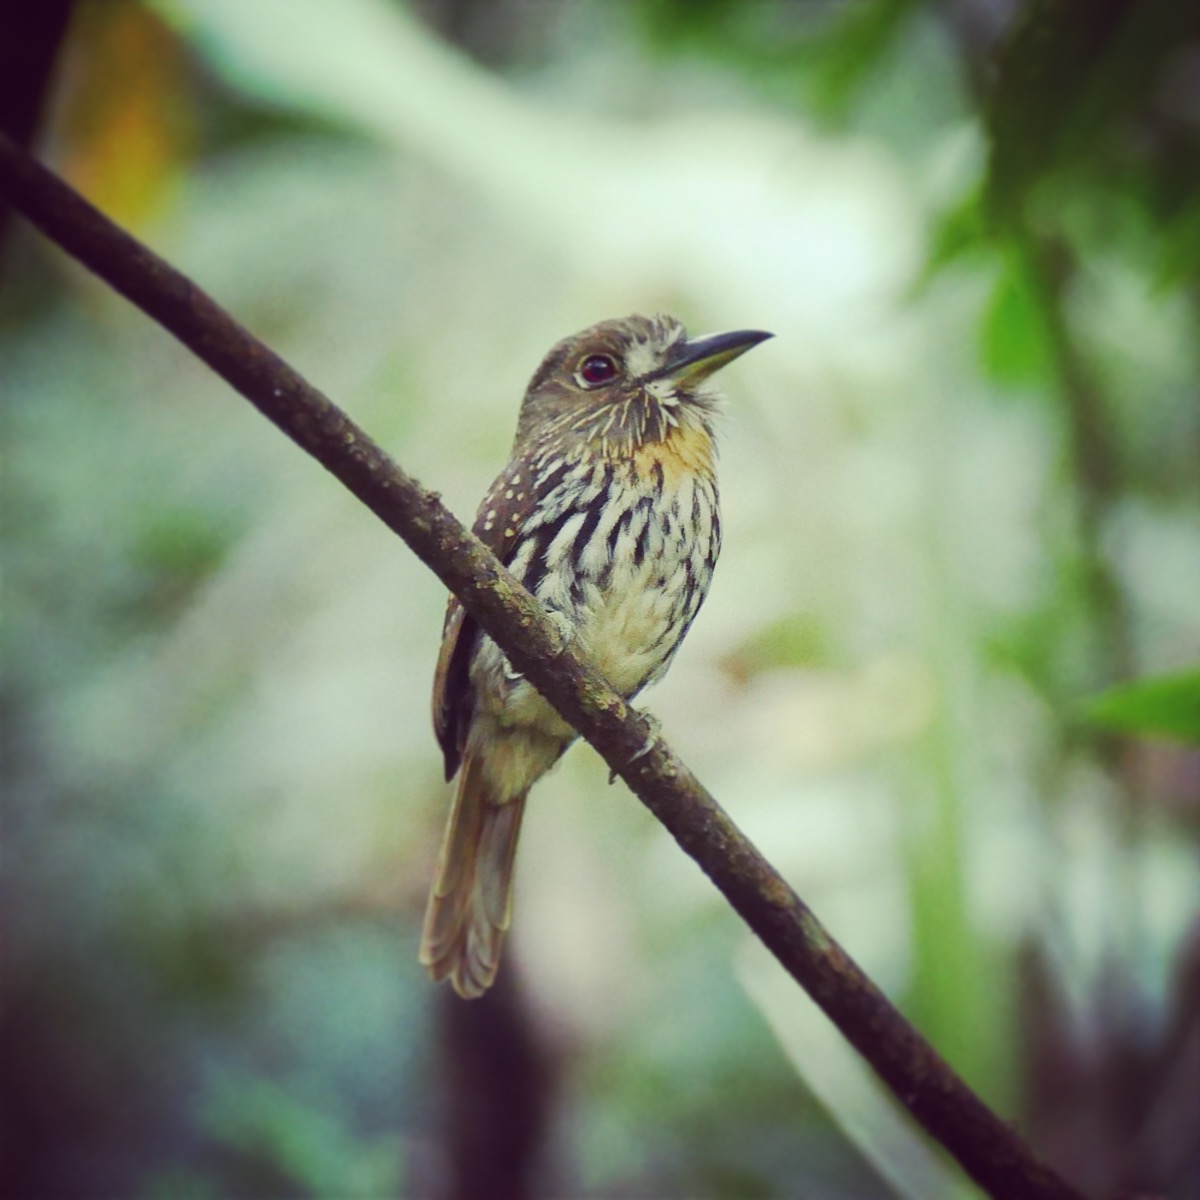 Noah's view of a White-whiskered Puffbird at the San Francisco forest. Noah Strycker